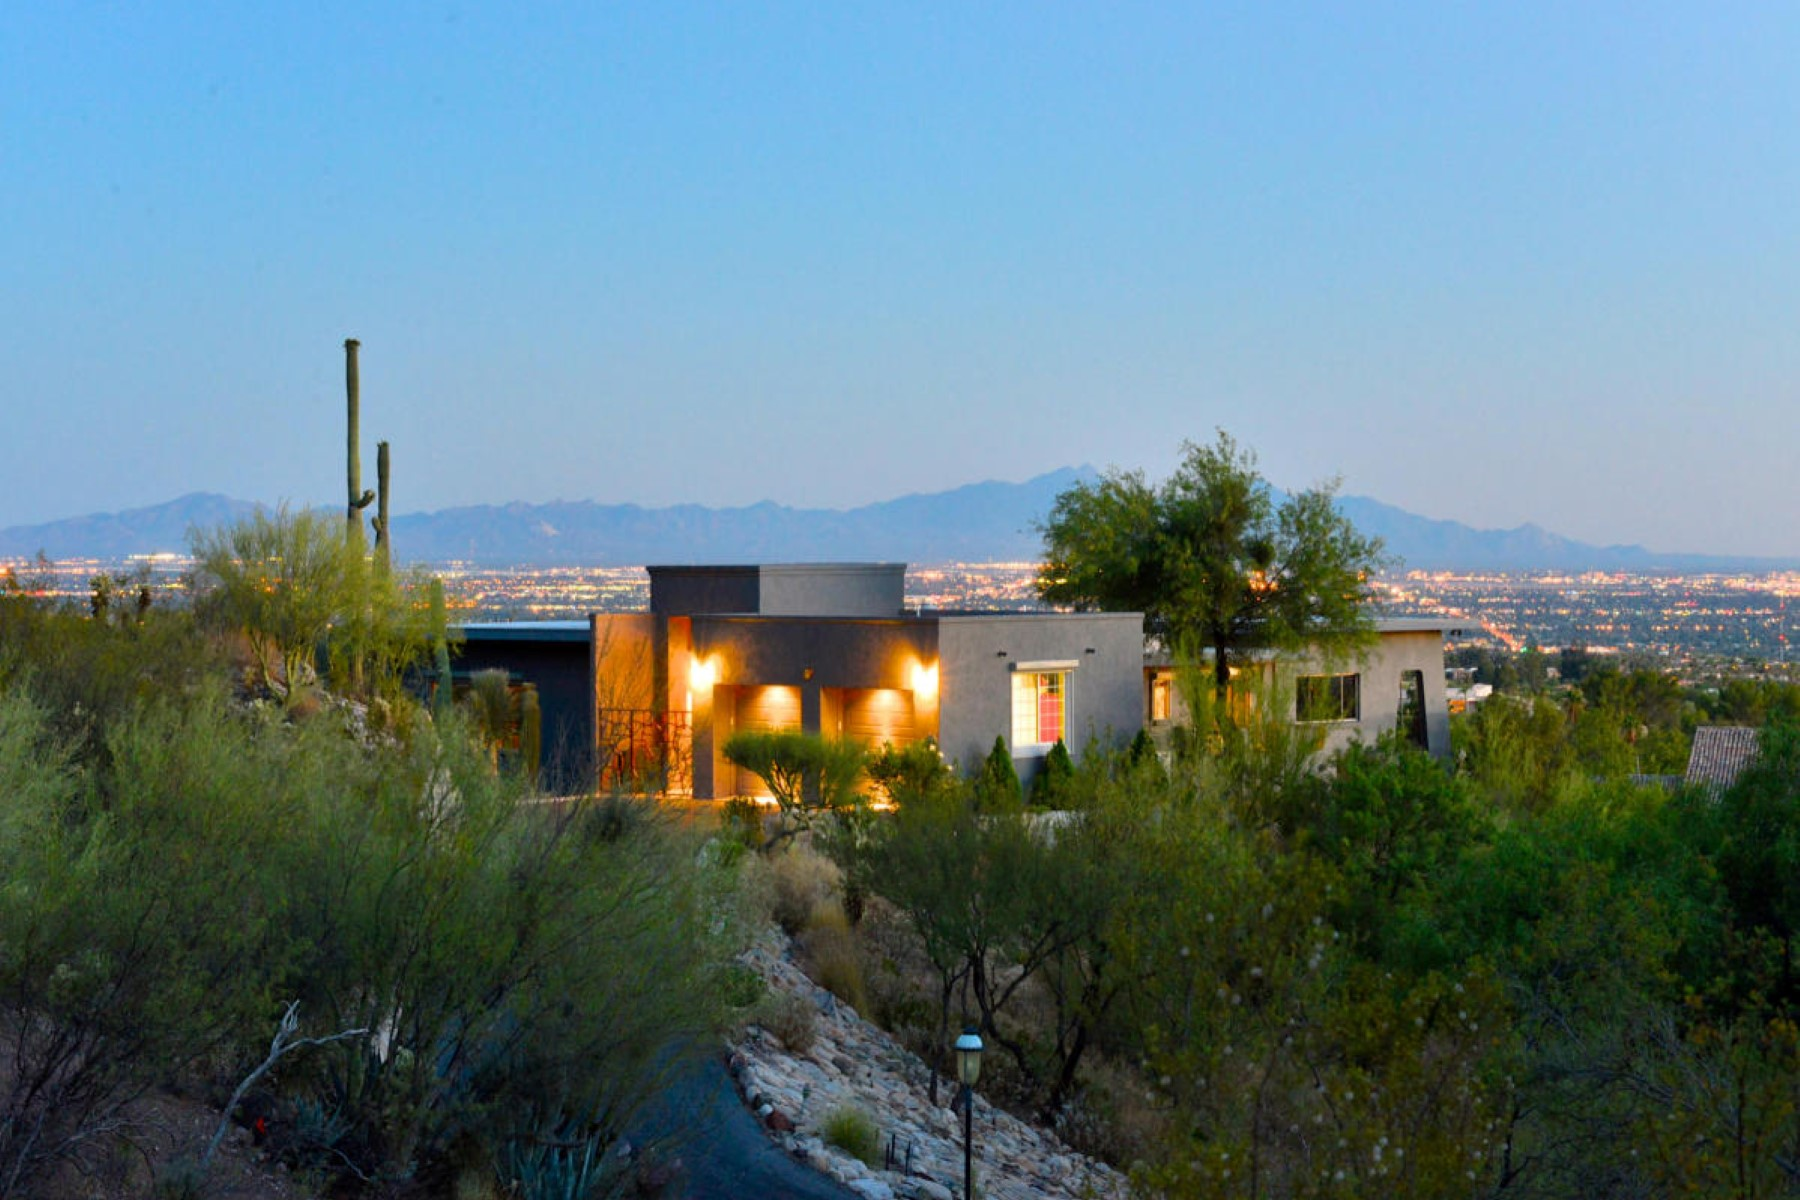 Moradia para Venda às Extraordinary modern contemporary home with spectacular city views. 4940 E Winged Foot Drive Tucson, Arizona, 85718 Estados Unidos